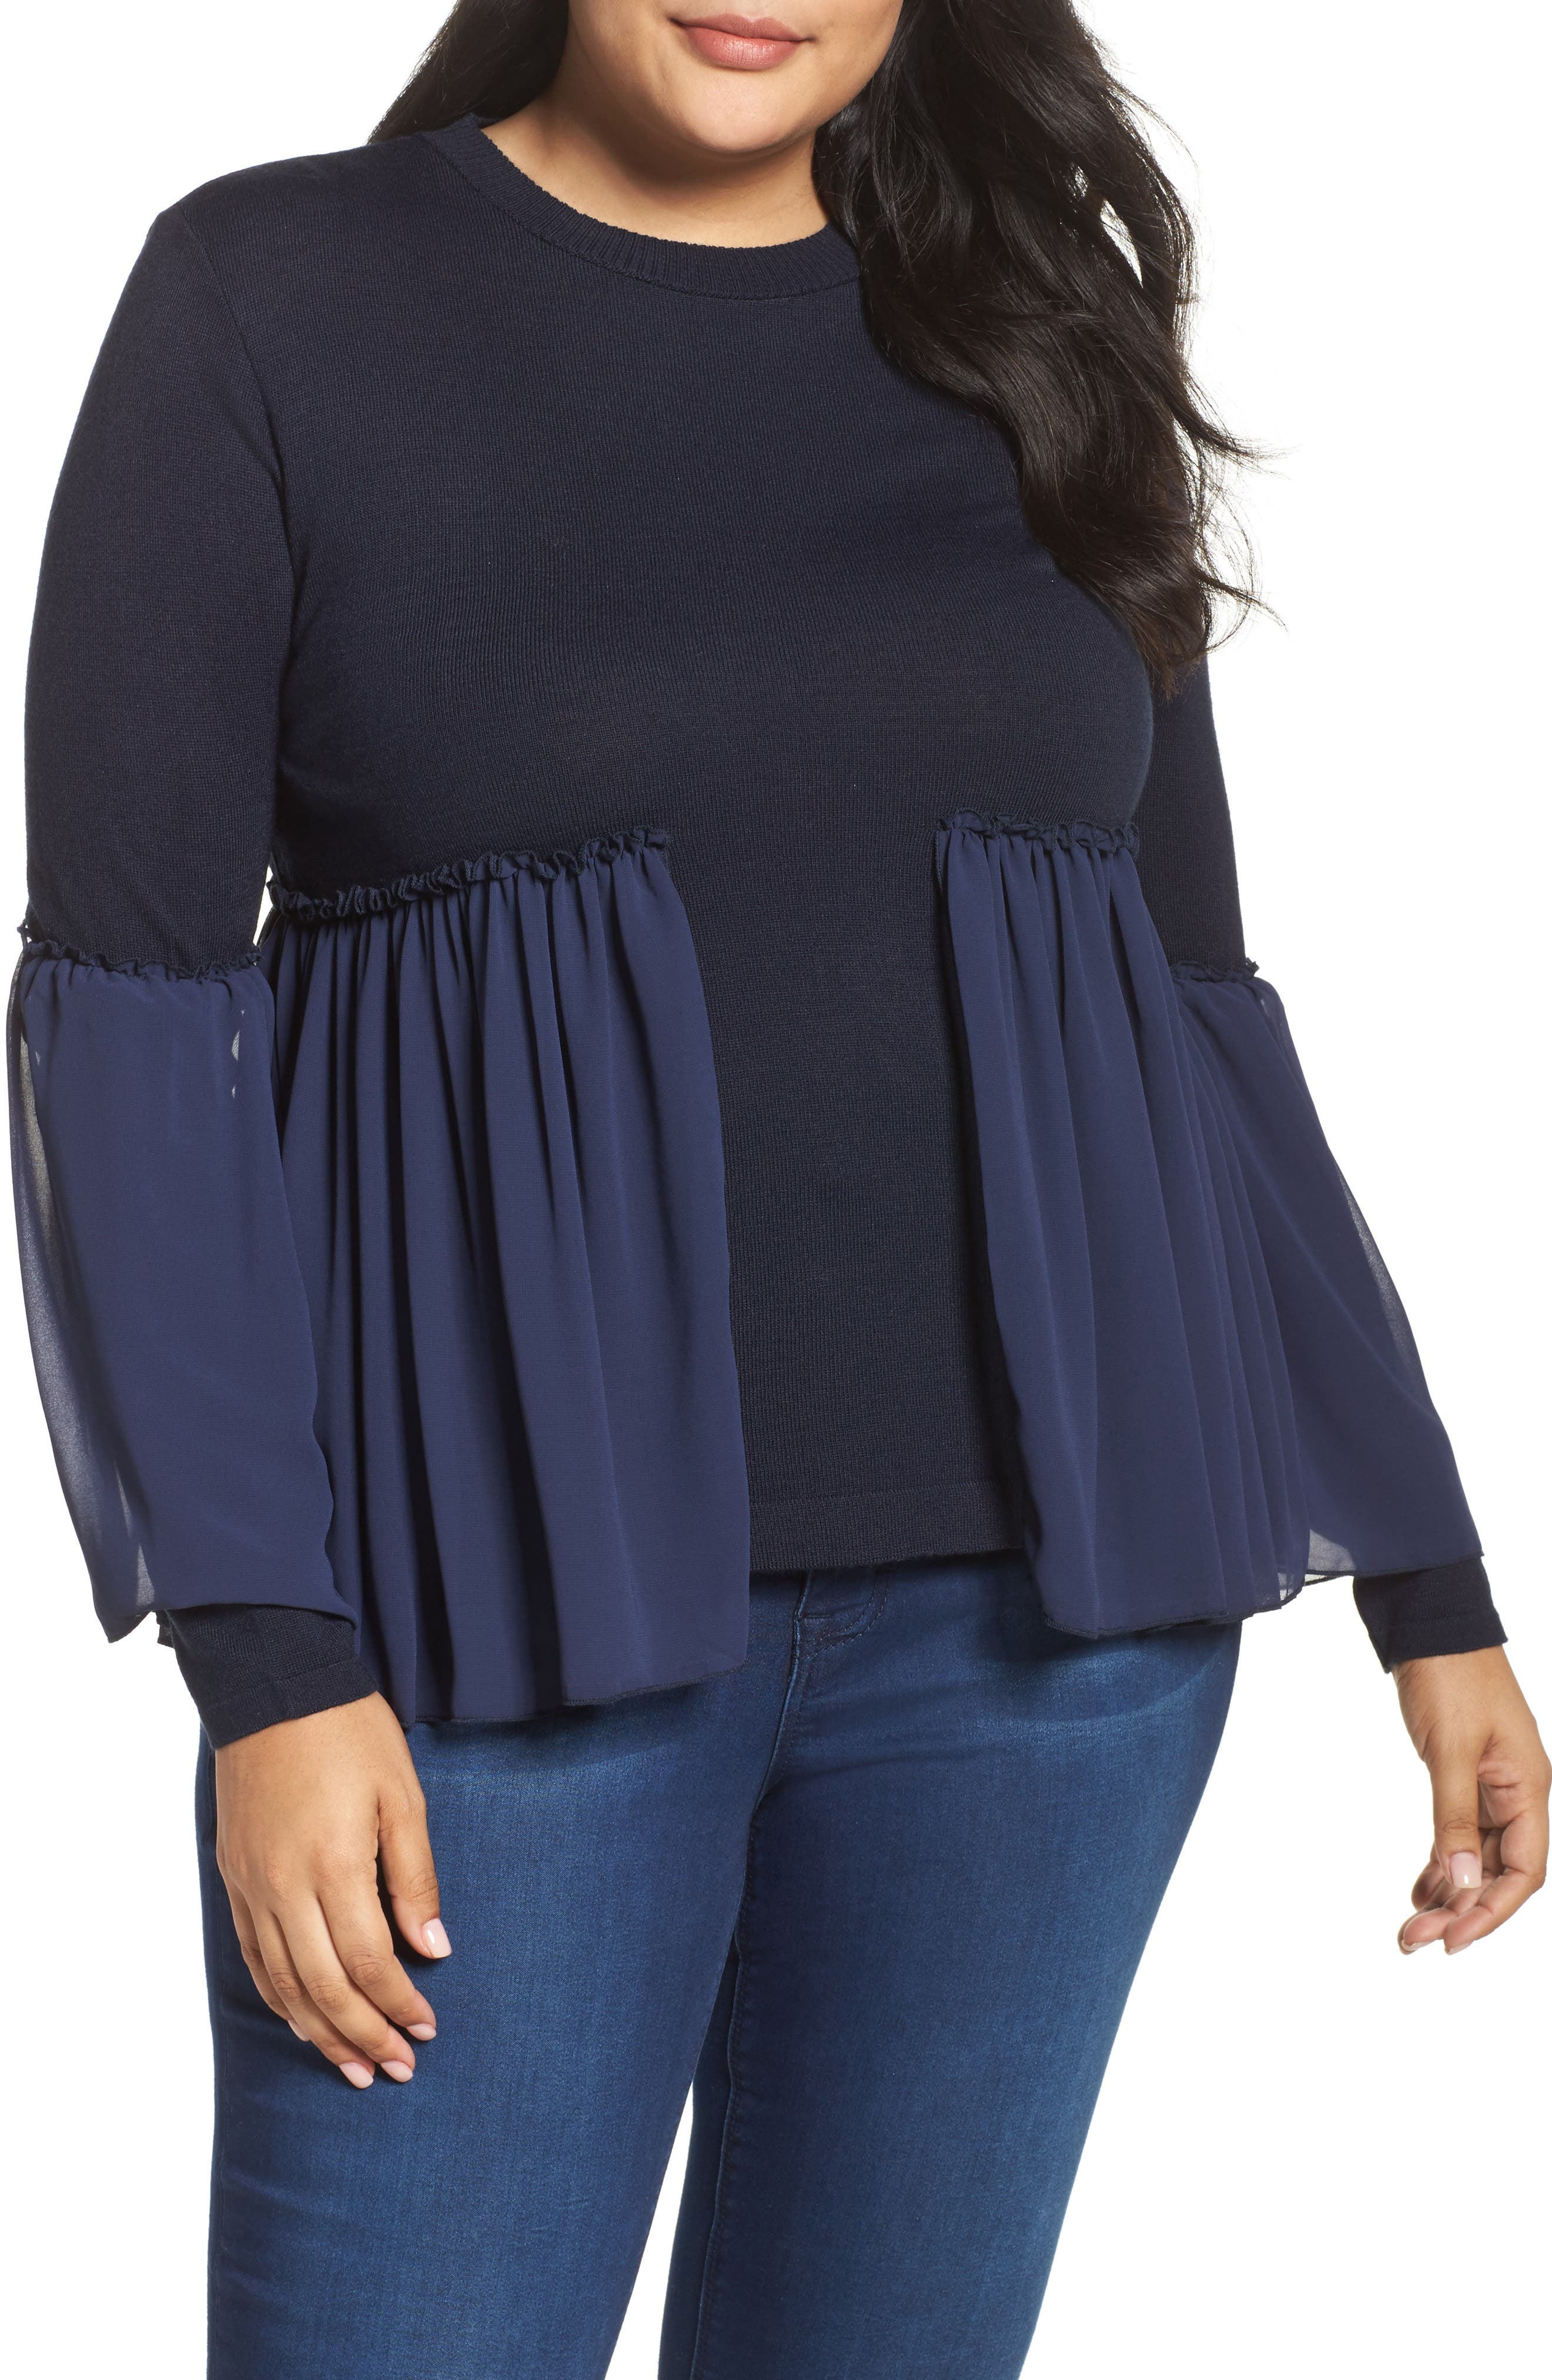 Alternate Image 1 Selected - LOST INK Smocked Chiffon Contrast Sweater (Plus Size)